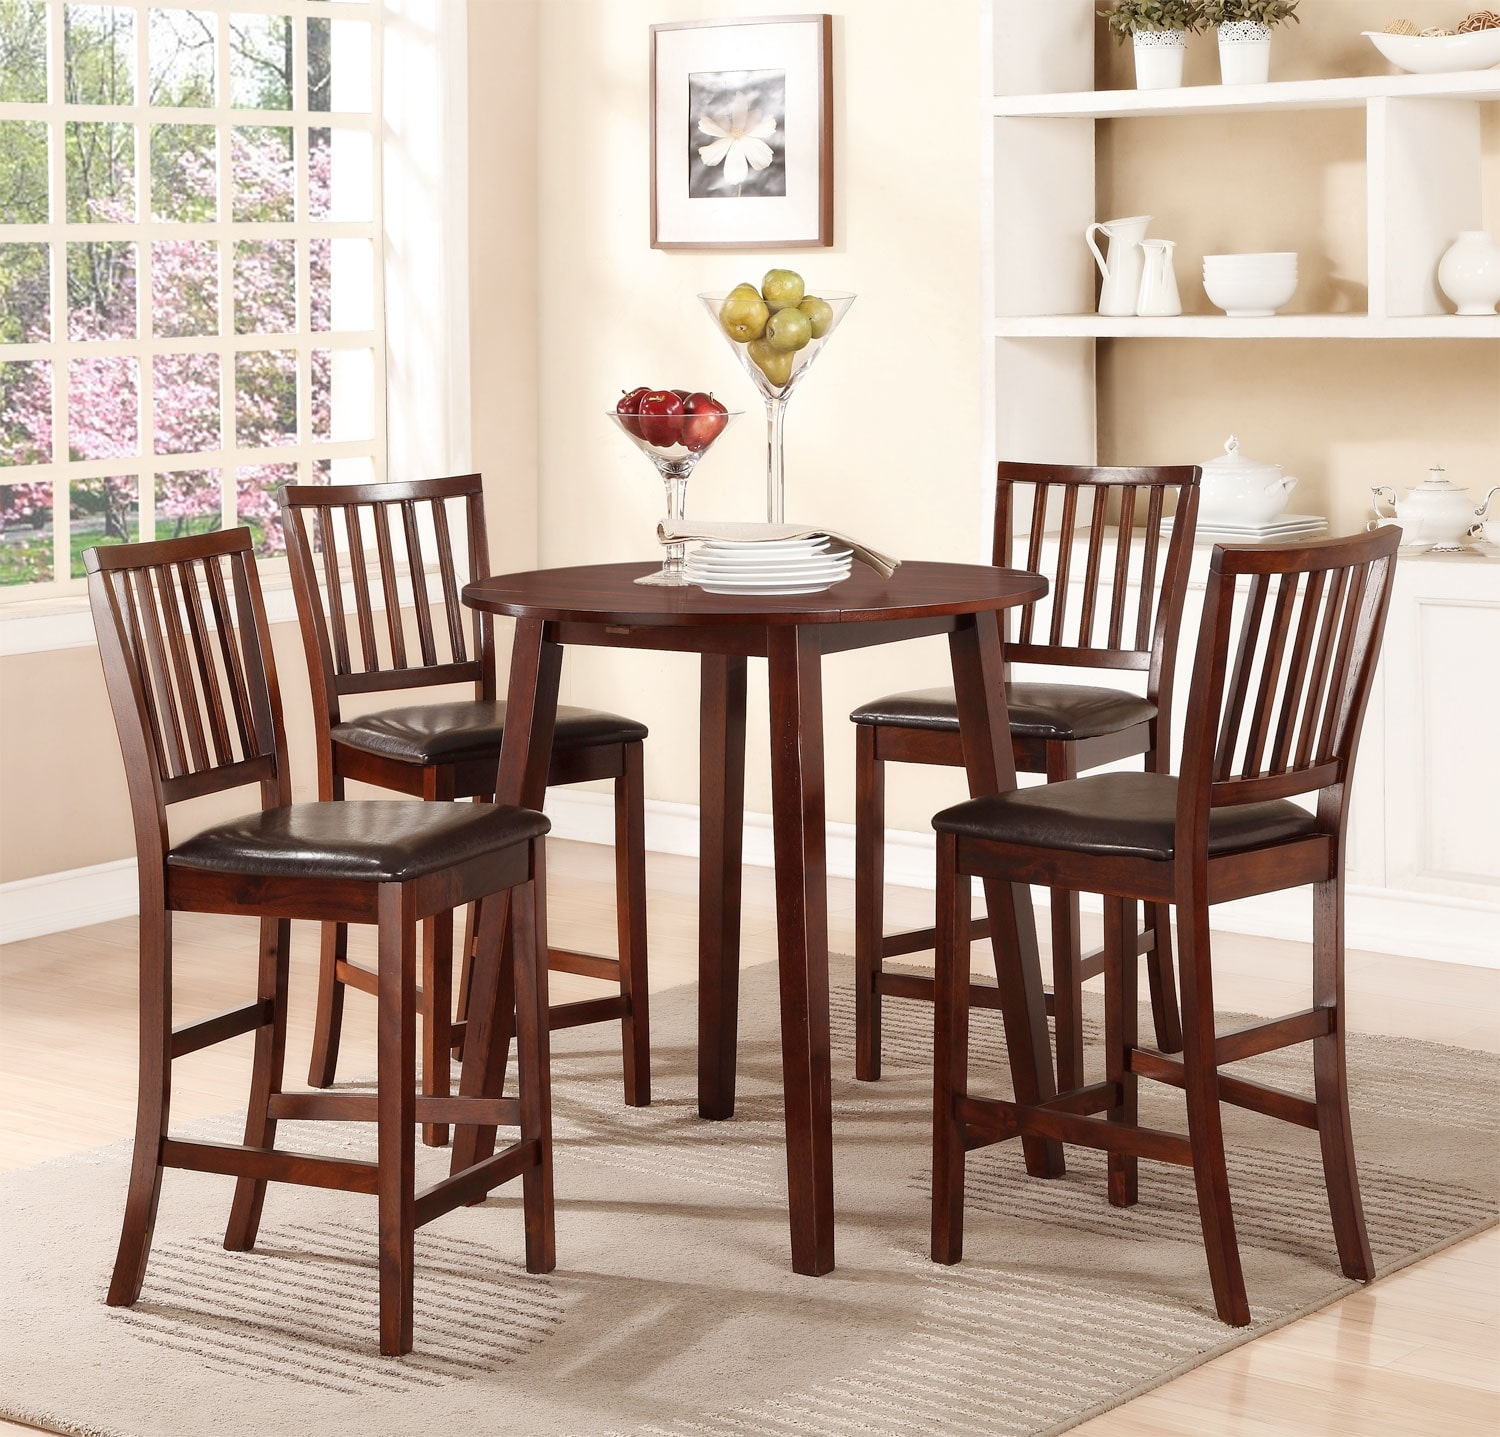 Adara 5-Piece Counter-Height Dining Package – Round Table